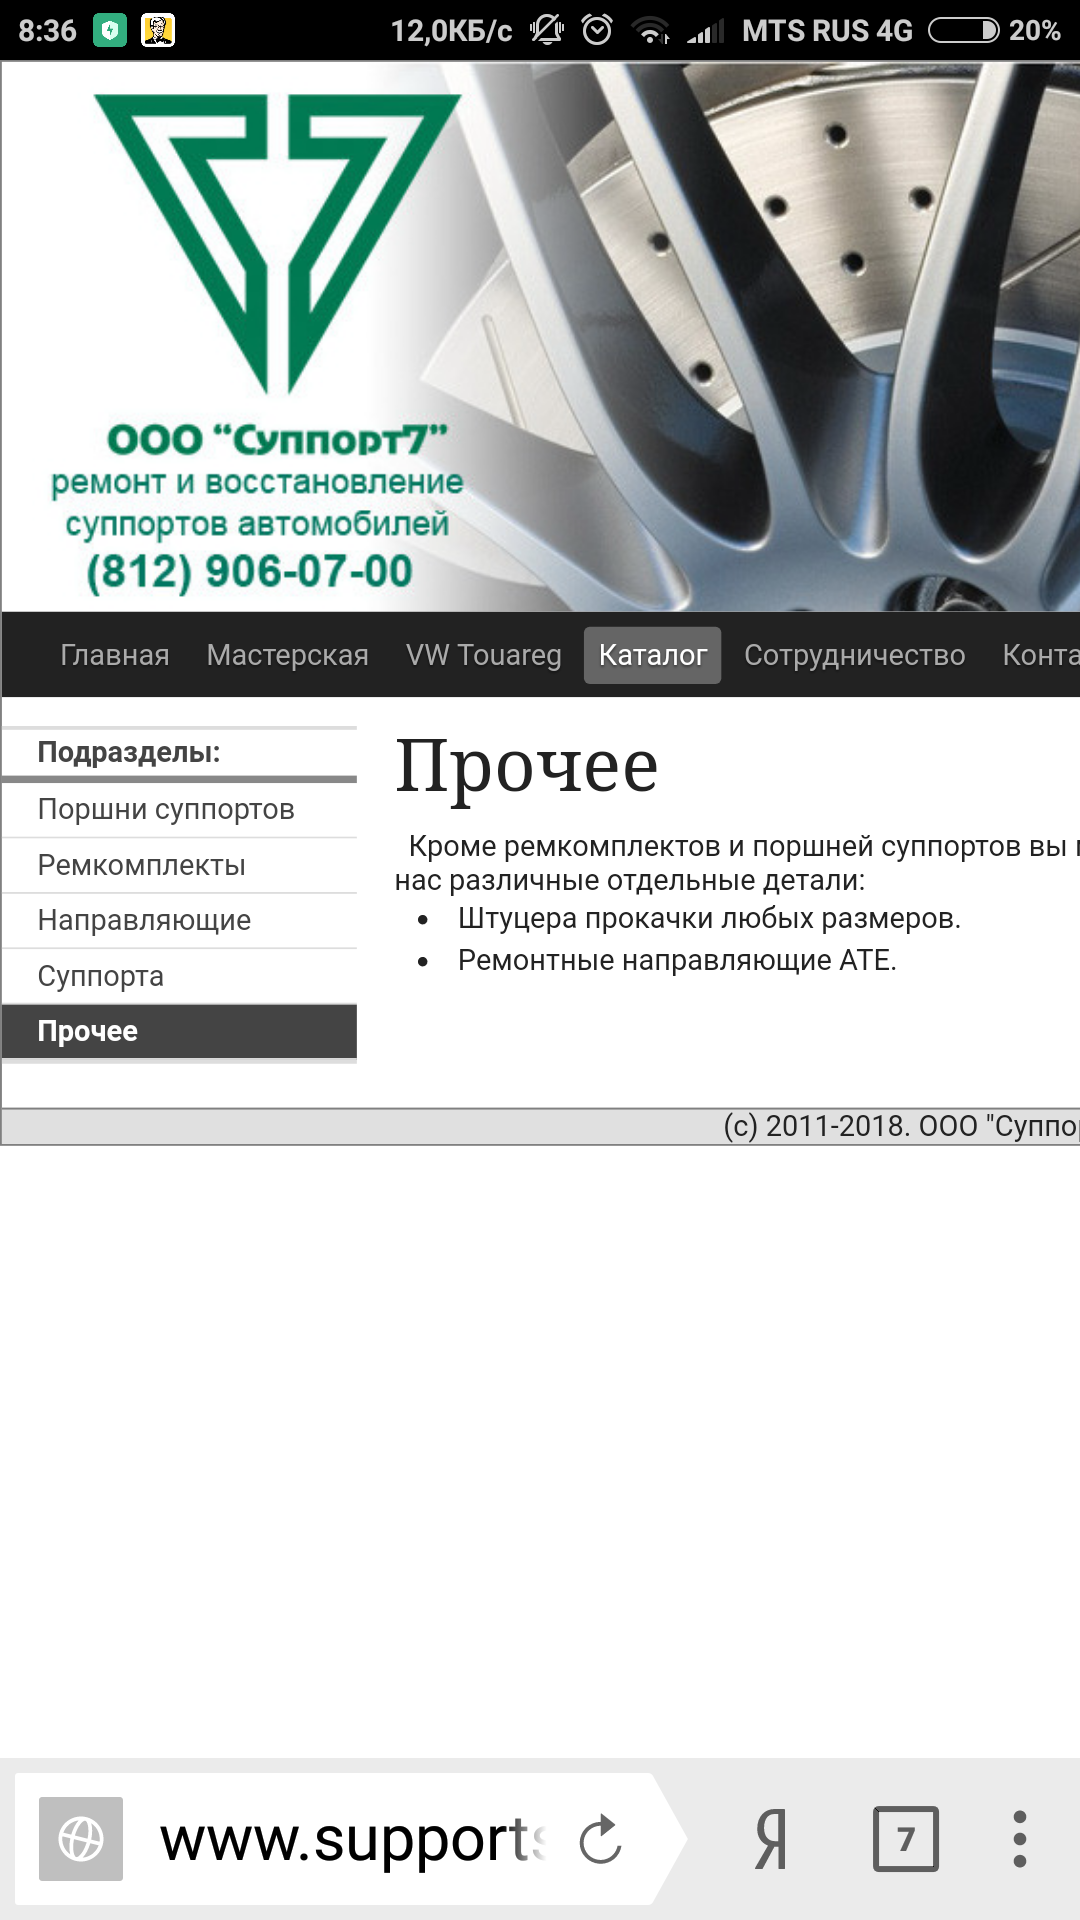 Screenshot_2018-06-12-08-36-47-569_com.yandex.browser.png